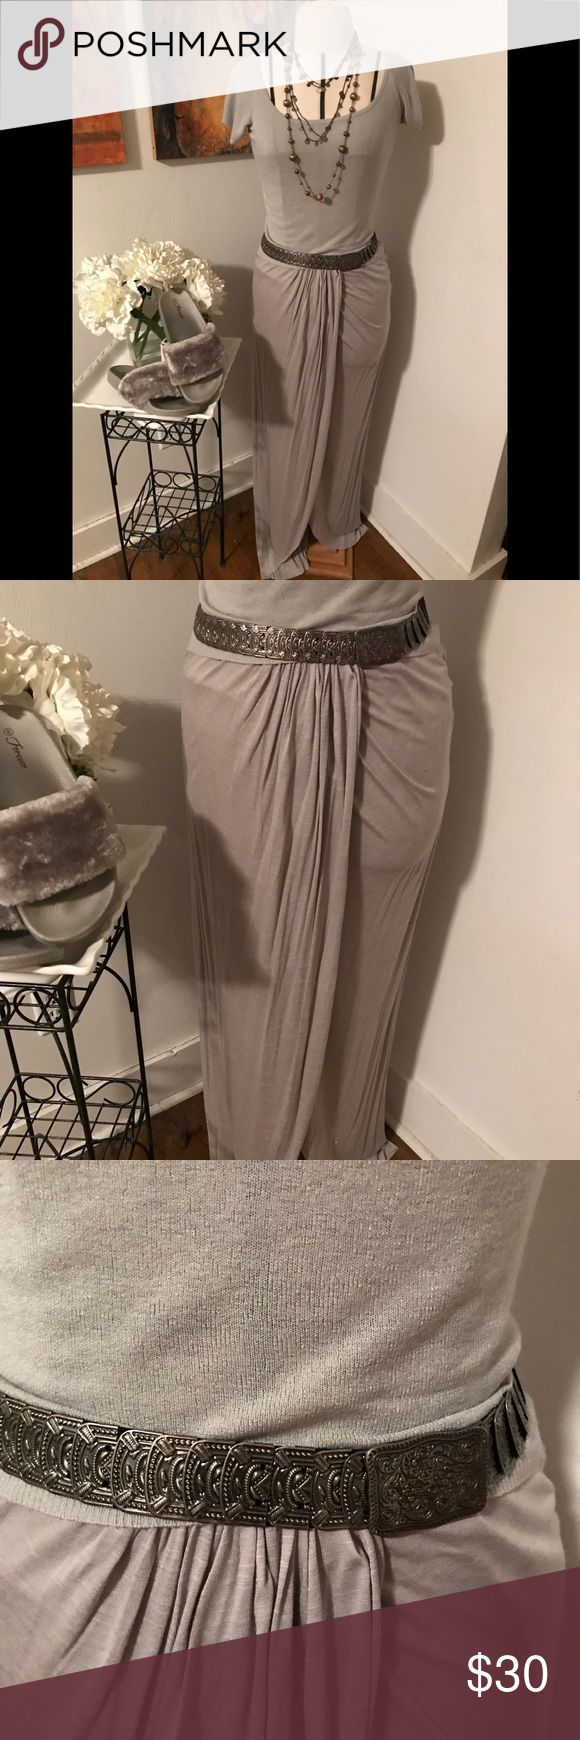 PHILOSOPHY grey sarong skirt PHILOSOPHY grey faux wrap sarong skirt. Pull on skirt with elastic waist .. Philosophy Skirts